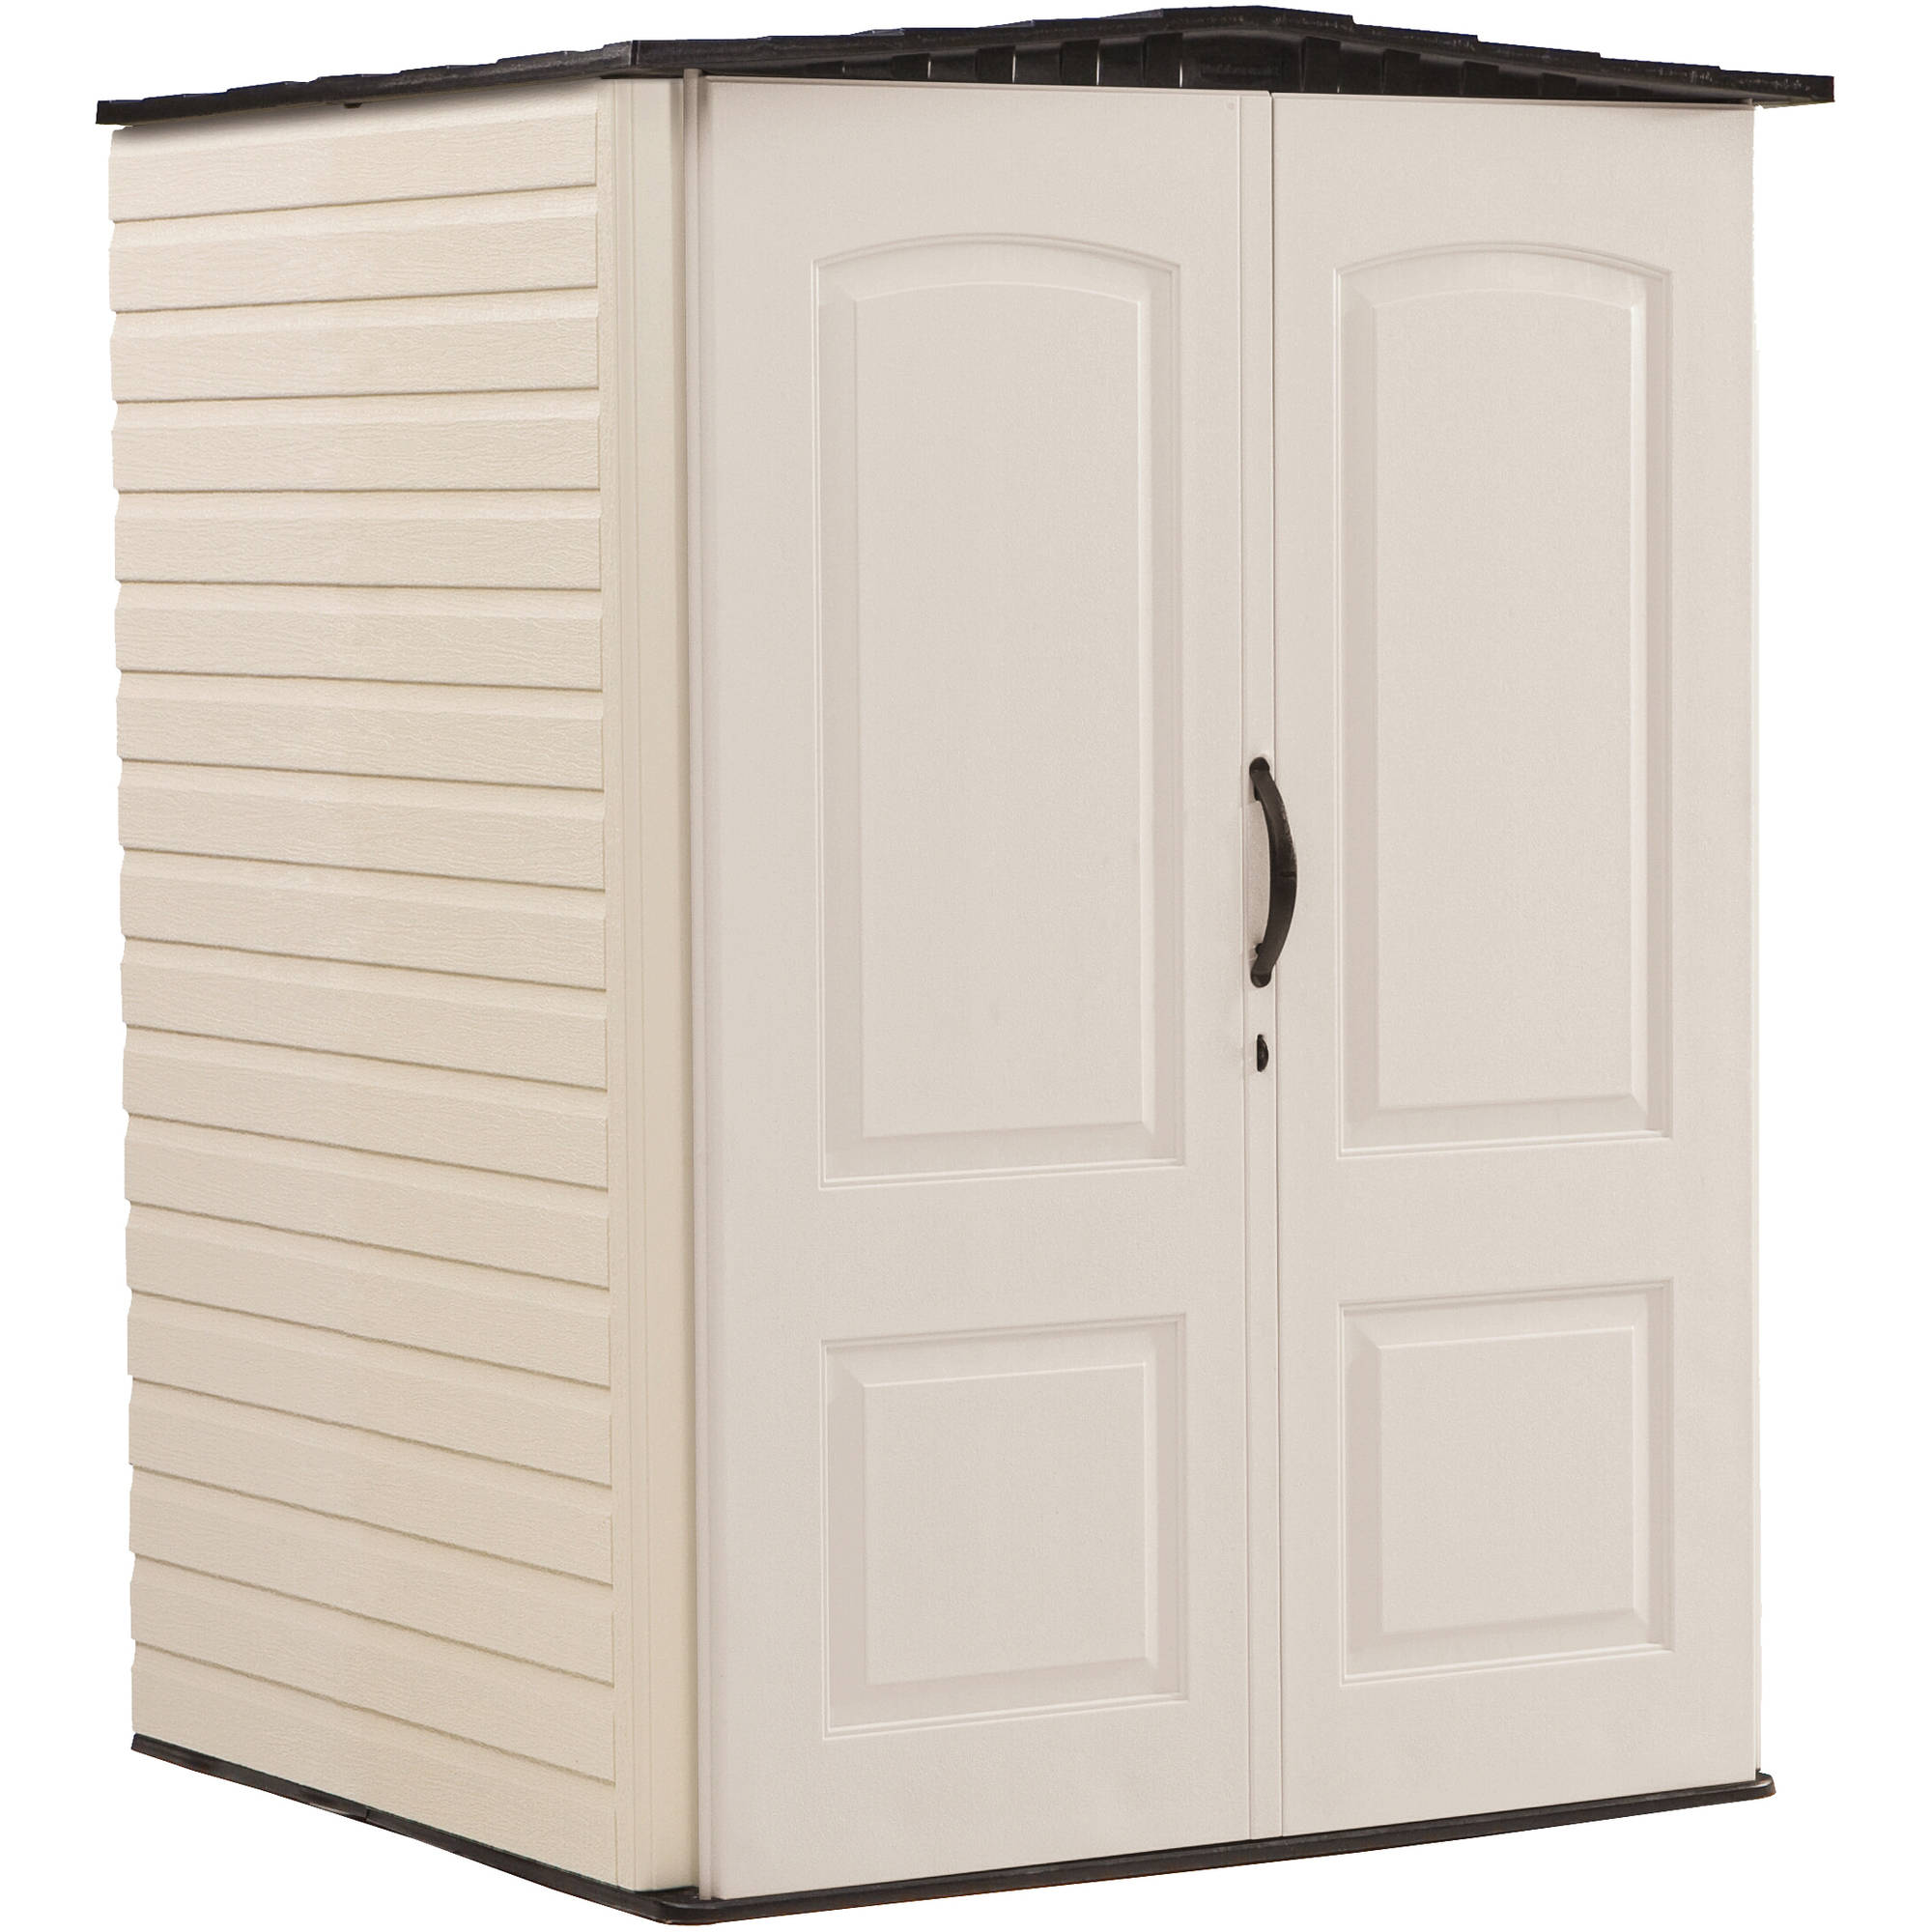 Garden Sheds Menards unique garden sheds kits menards build kitwoodwork patterns on